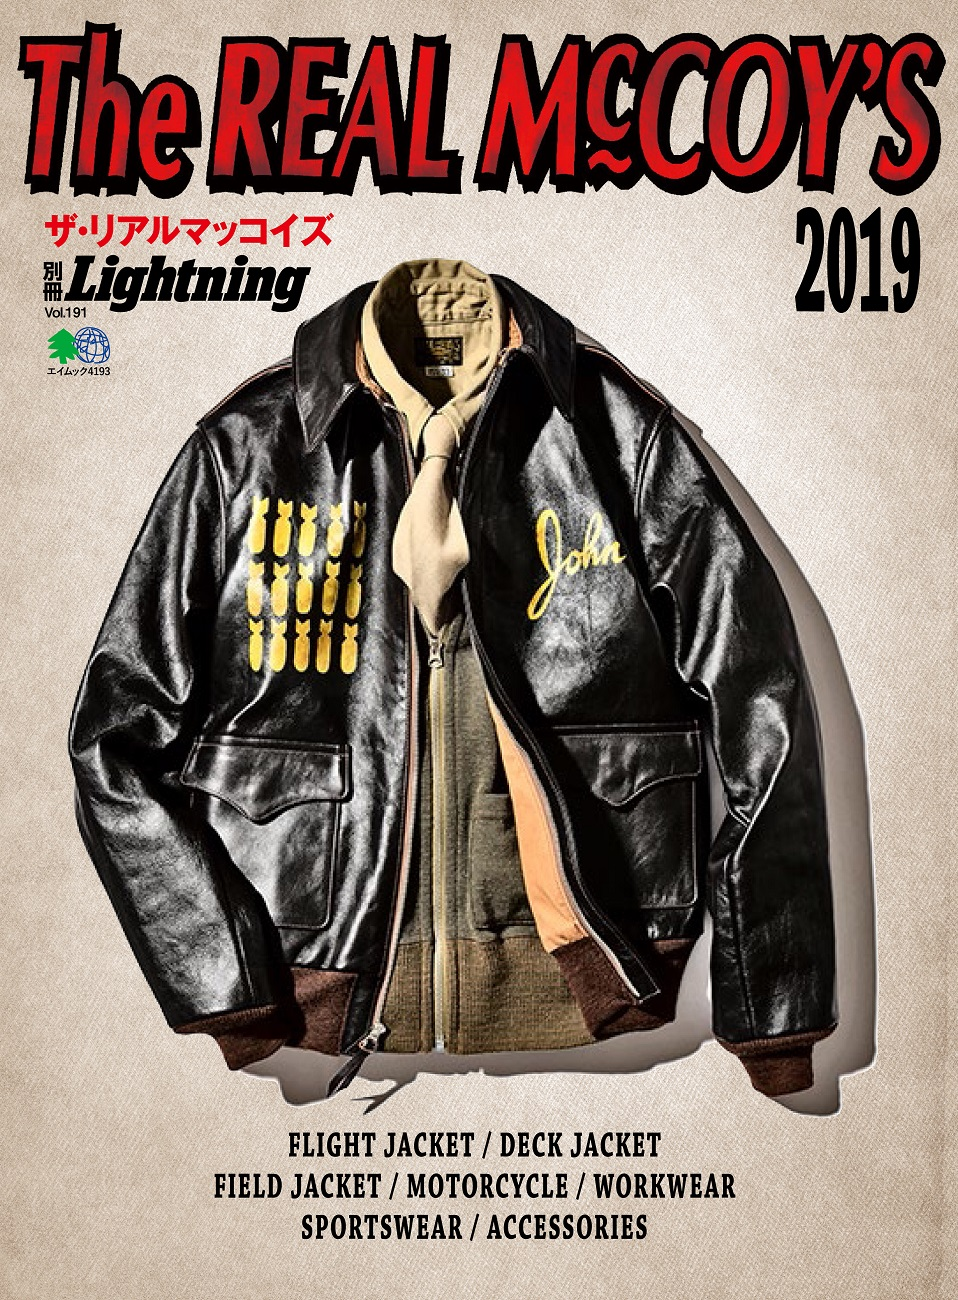 http://www.realmccoys.co.jp/blog/whats_new/images/TheREALMcCOY2019_Cover.jpg